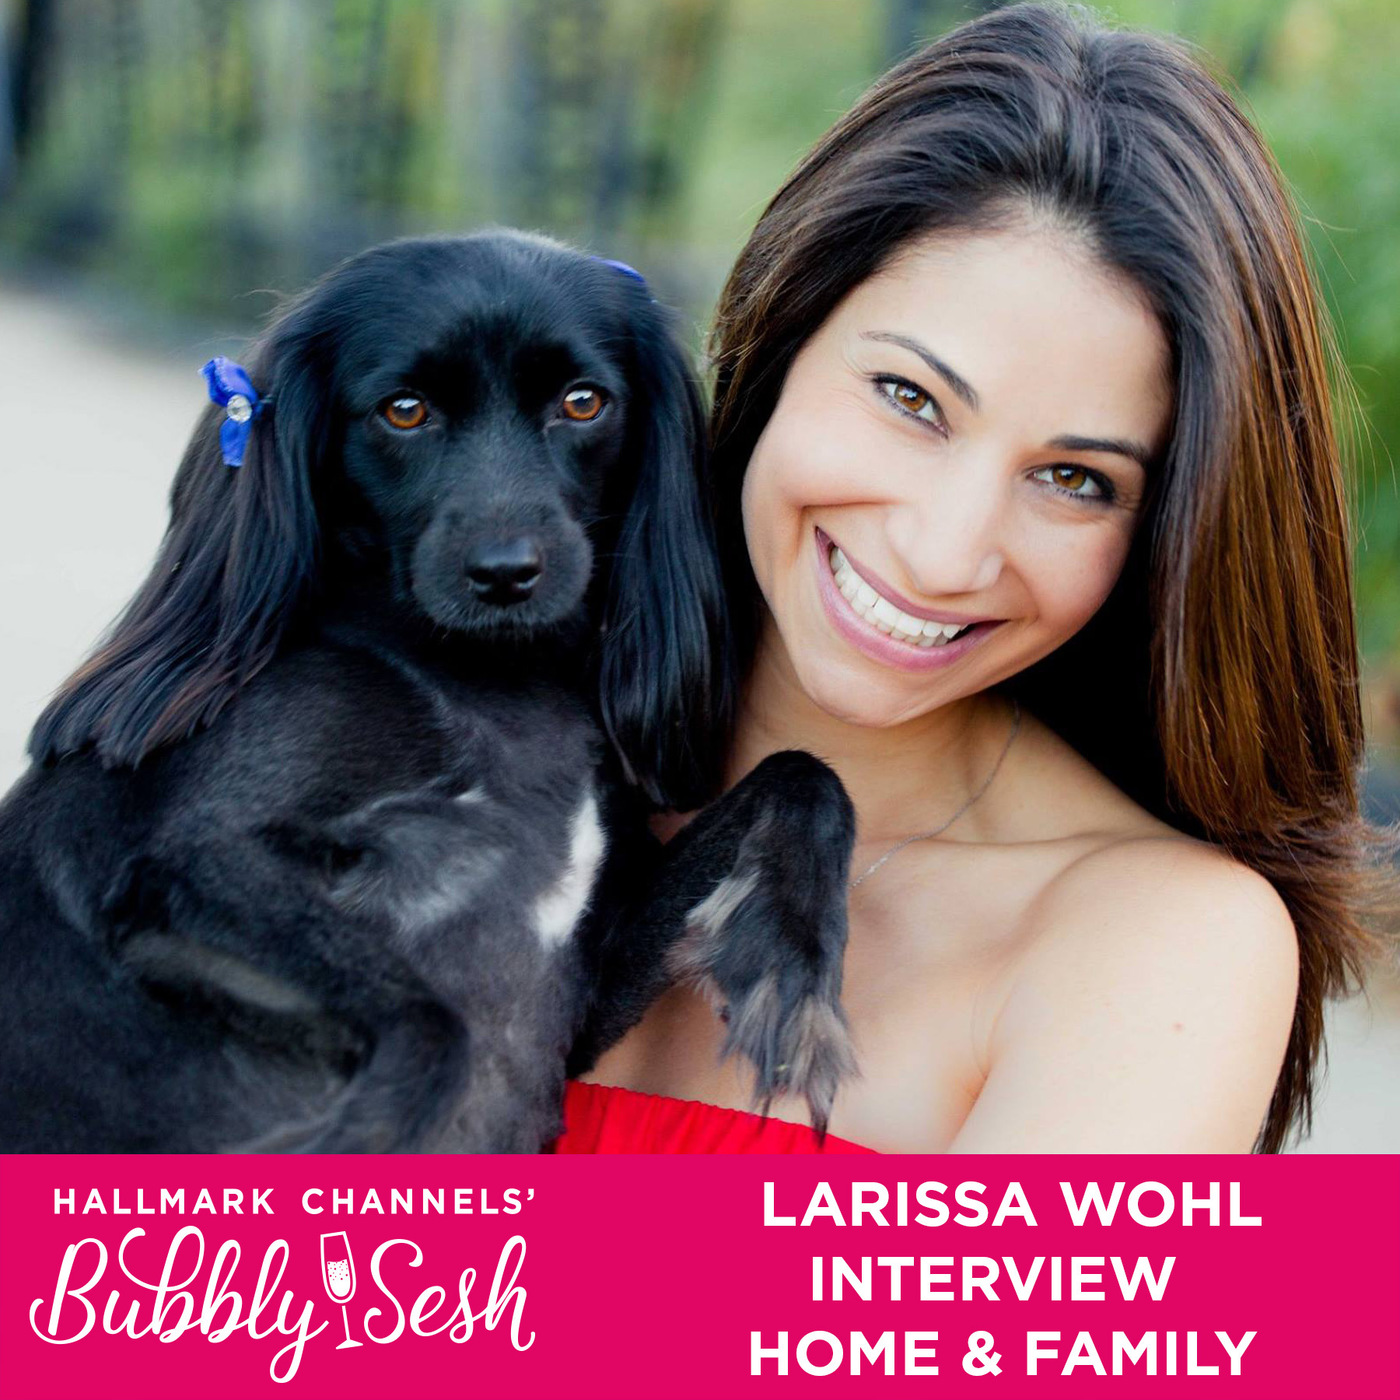 Larissa Wohl Interview: Home & Family | Bubbly Sesh